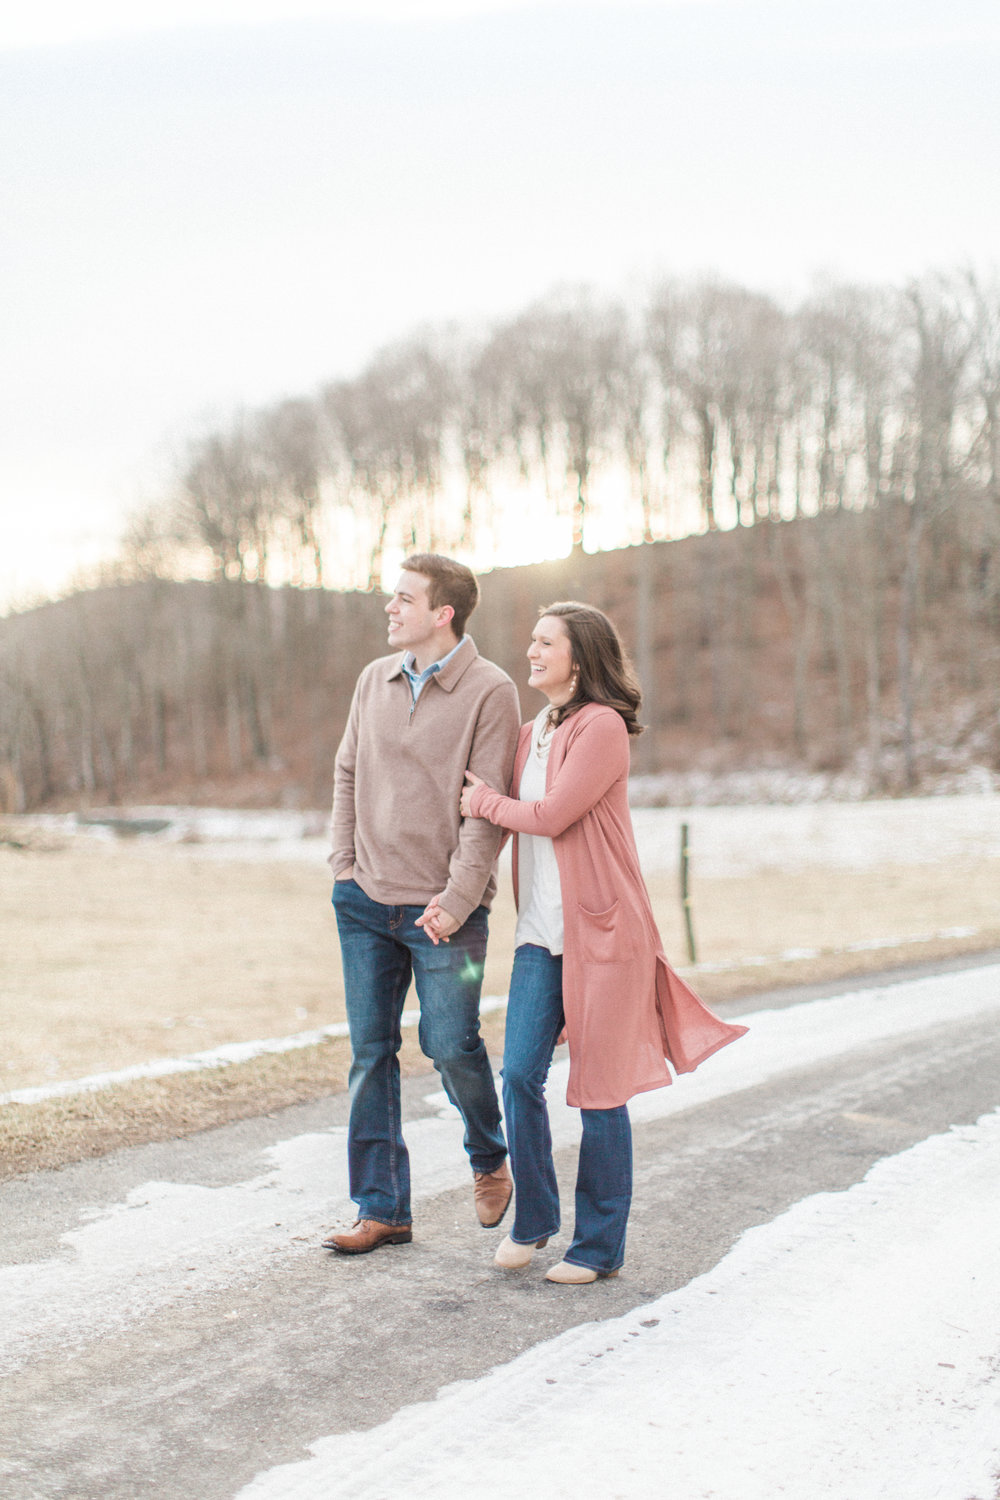 Abigail_Jill_Photography_Maryland_Engagement_Farm_Emily_Justin54.jpg